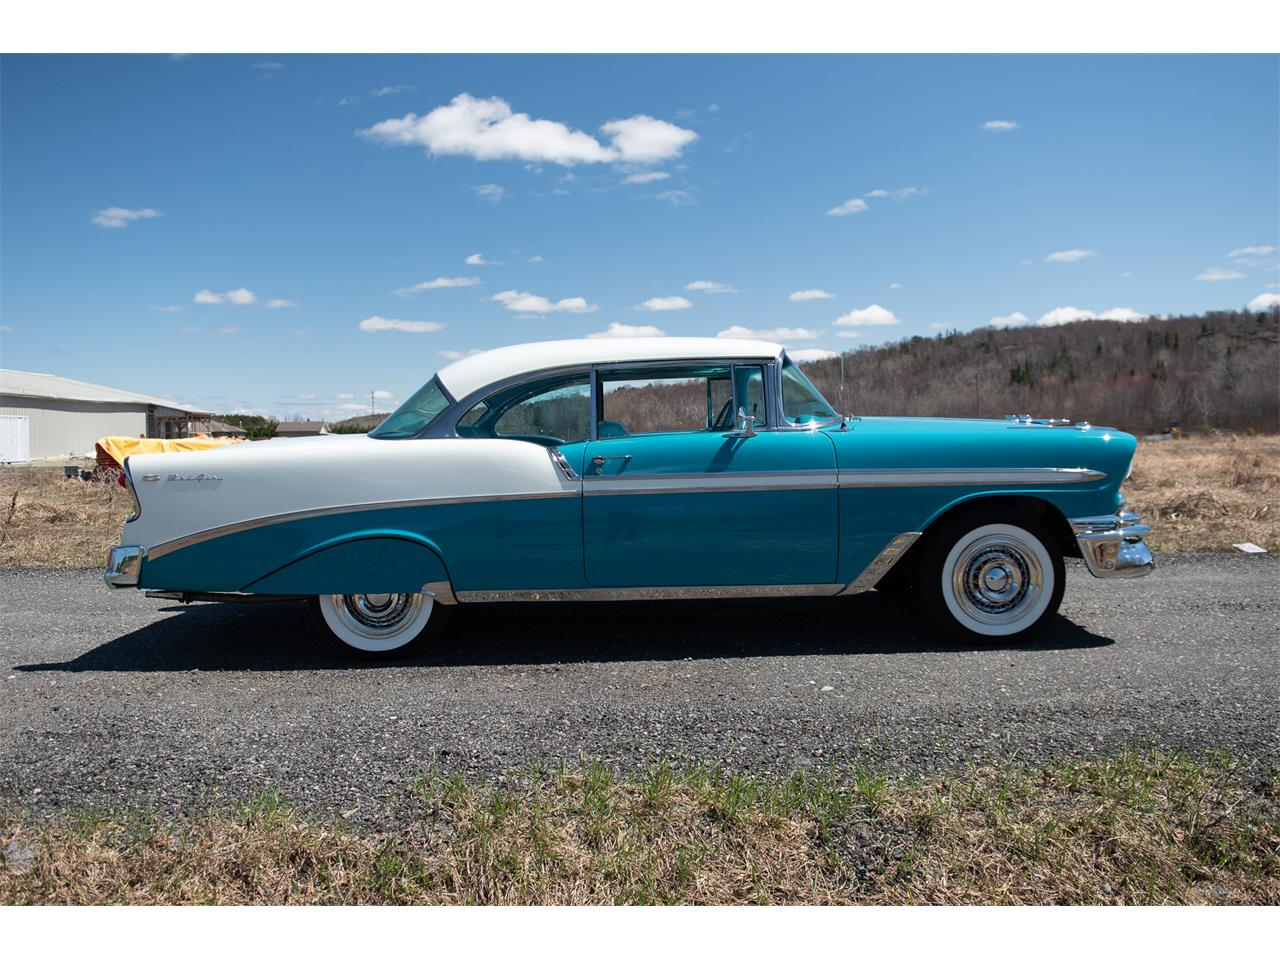 Large Picture of 1956 Chevrolet Bel Air located in Ontario - $69,500.00 - Q1QB